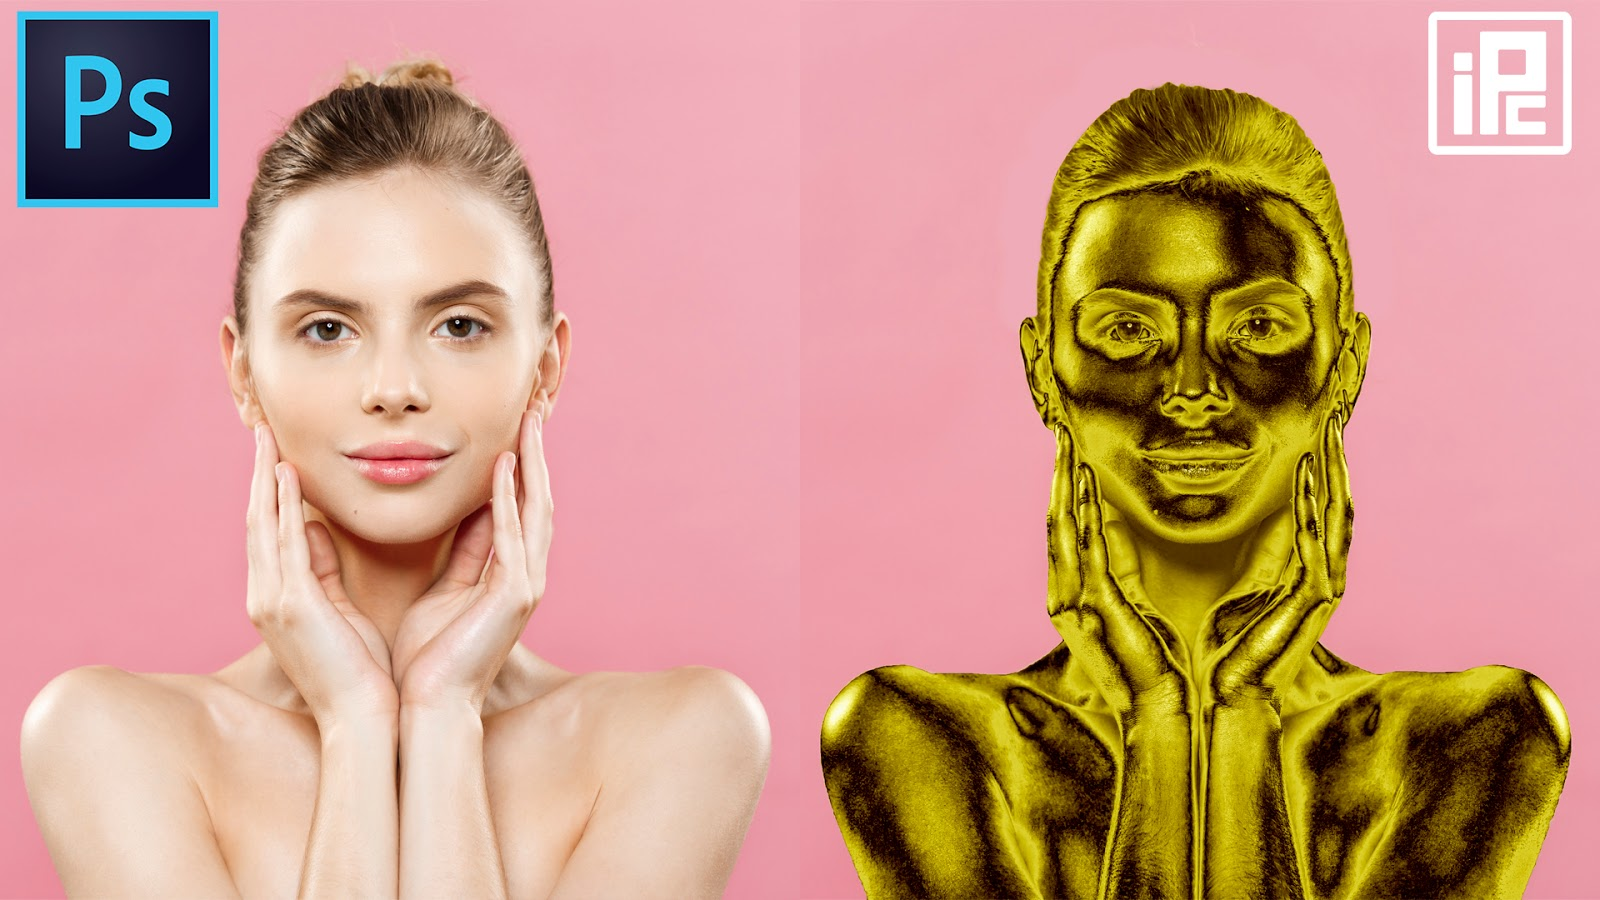 photoshop golden effect, how to create golden effect in photoshop, photoshop golden effect, golden effect in photoshop,photoshop tutorial, photoshop, illphocorphics, illphocorphics tutorial,